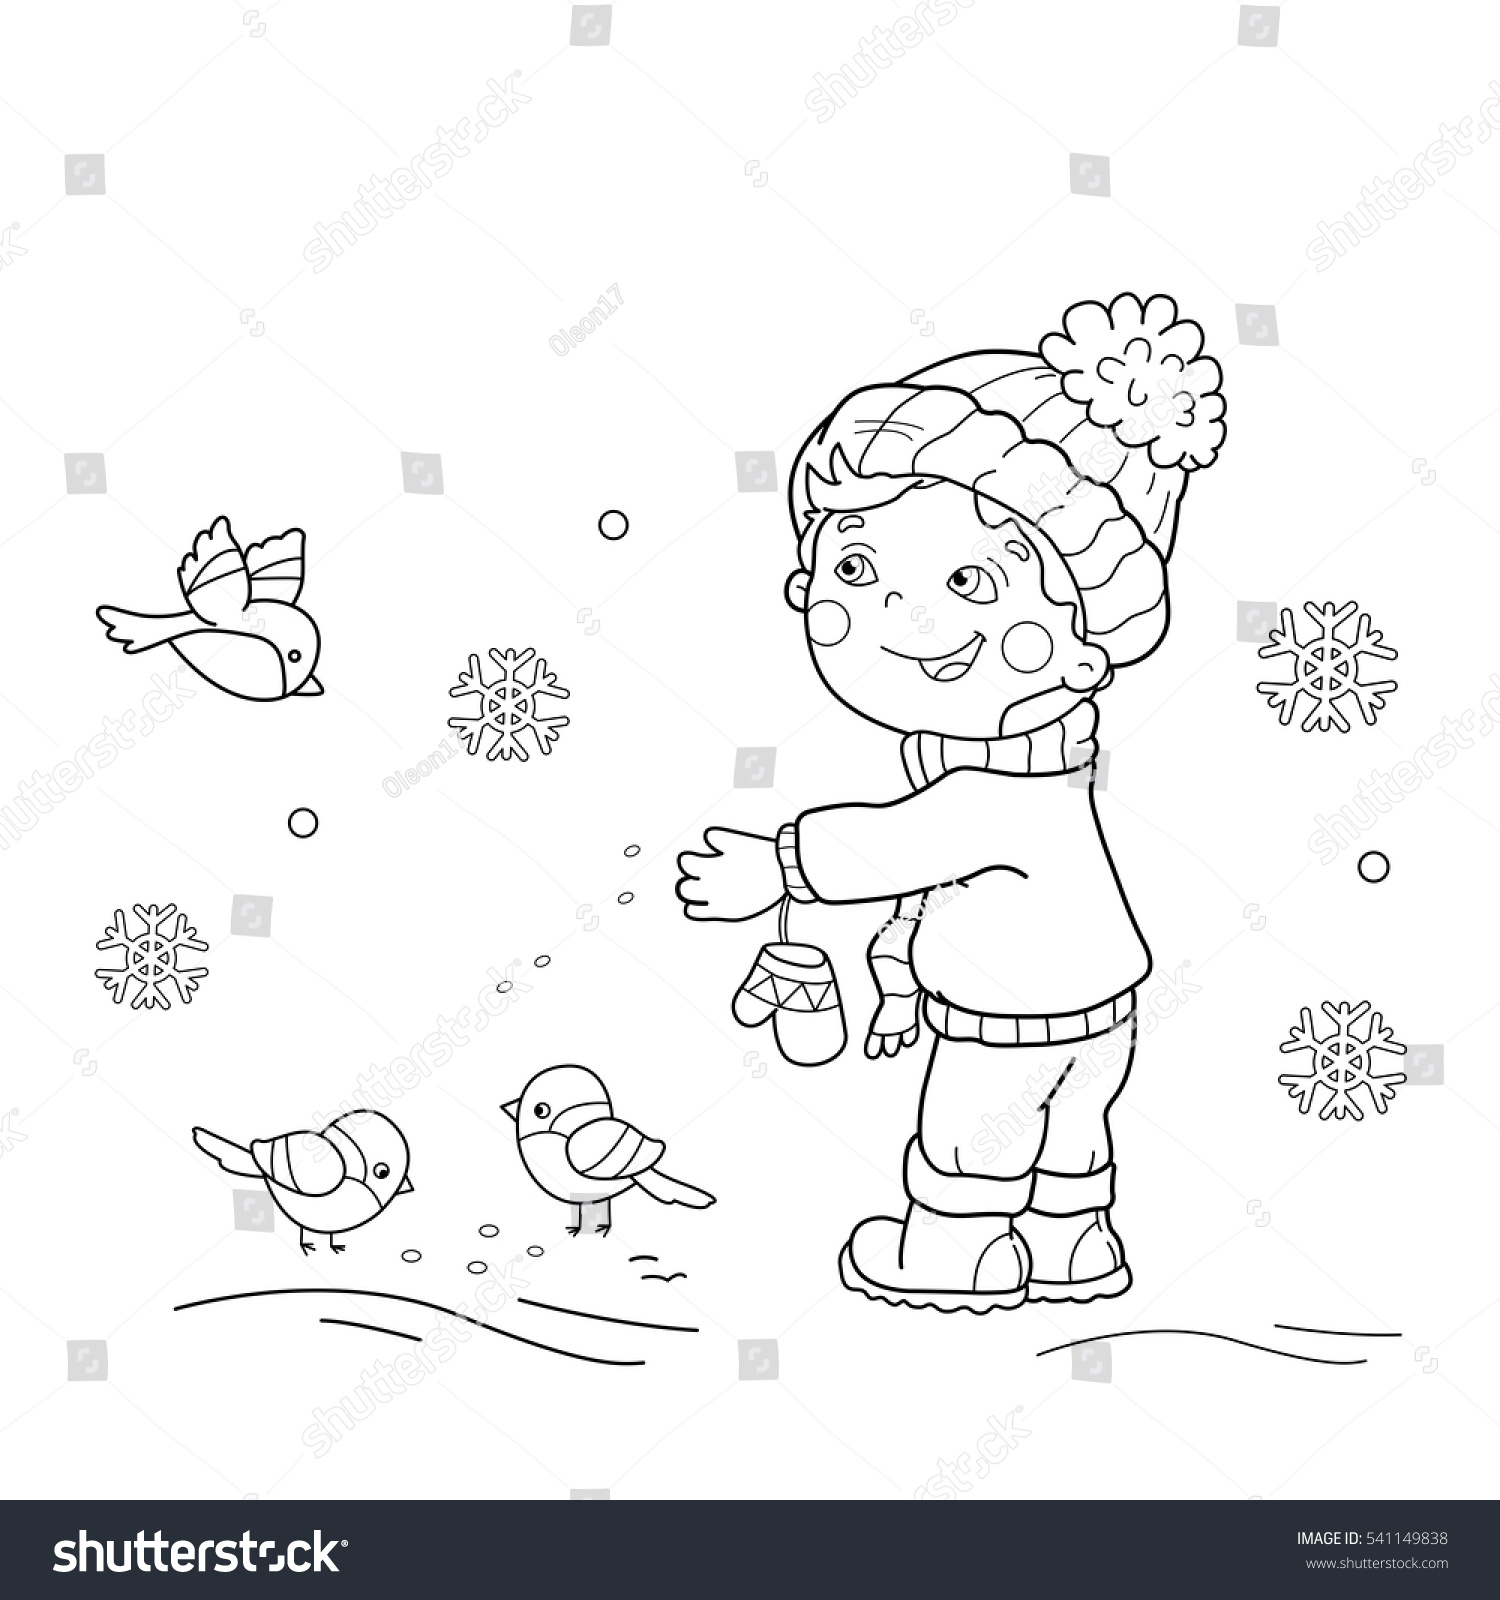 Coloring Page Outline Cartoon Boy Feeding Stock Vector (Royalty